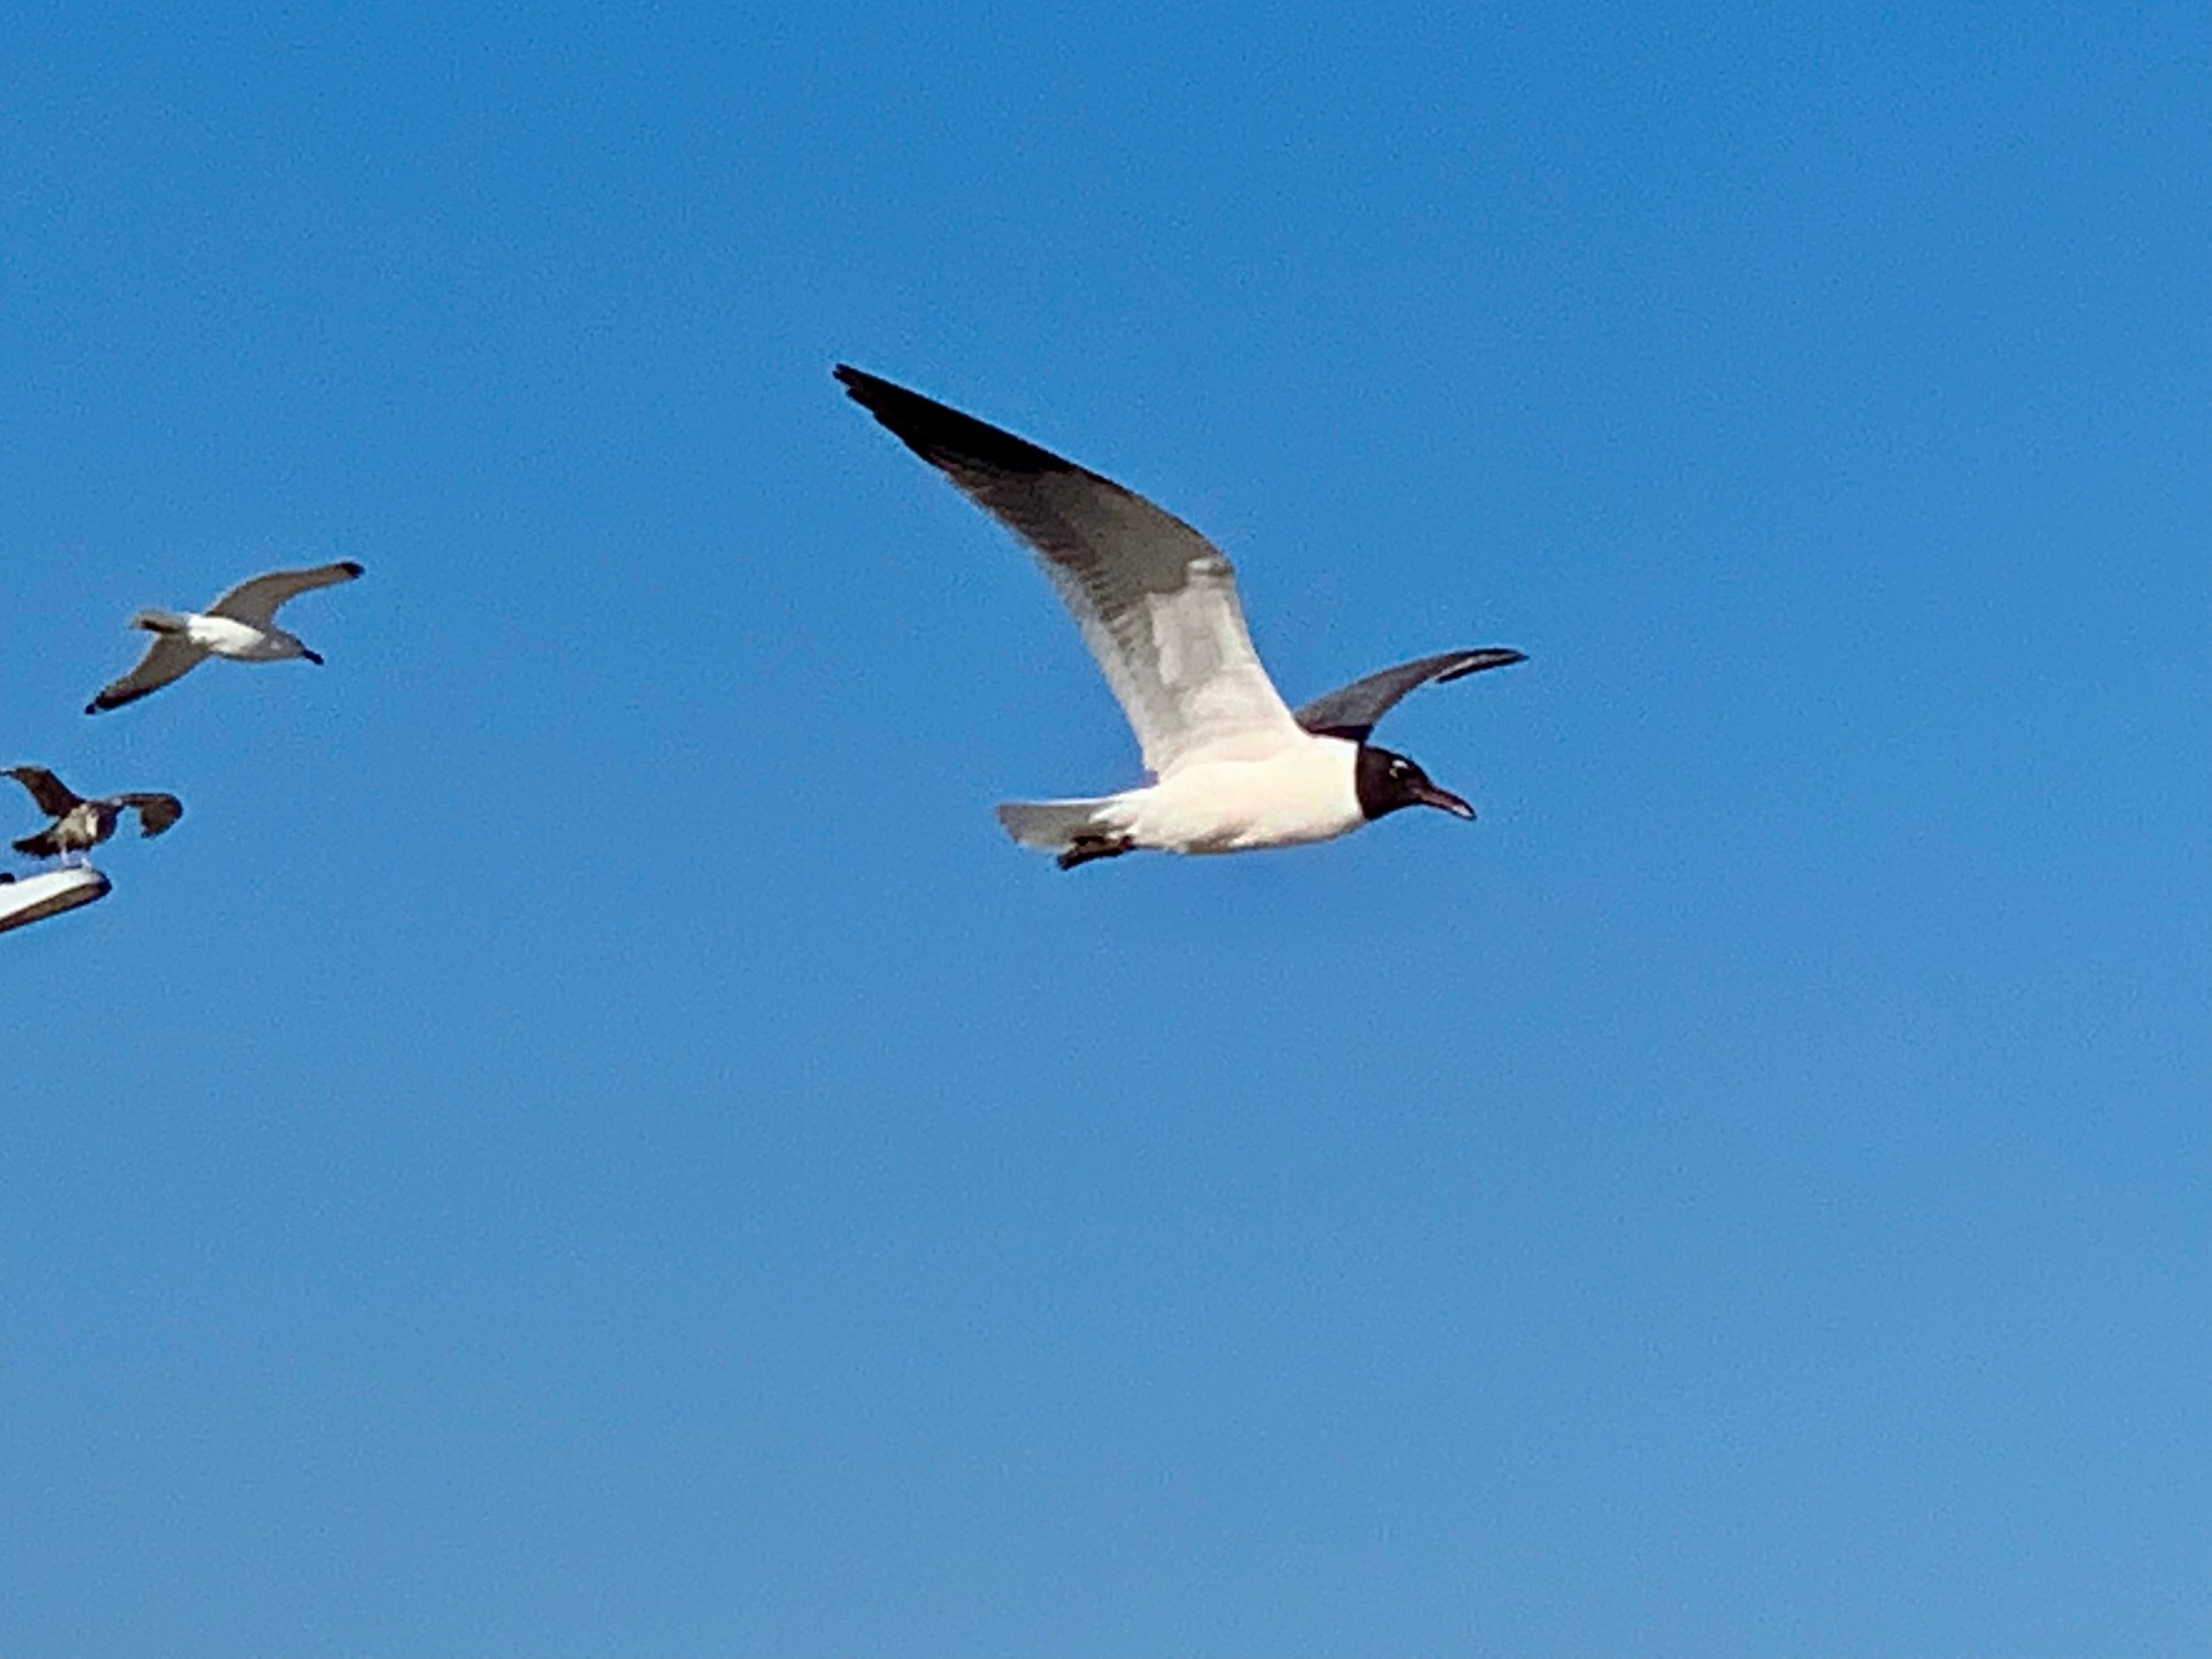 The Laughing Gulls and other migratory birds are back for summer in the Rockaways! They bring joy and a wonderful balance to our life in NYC.